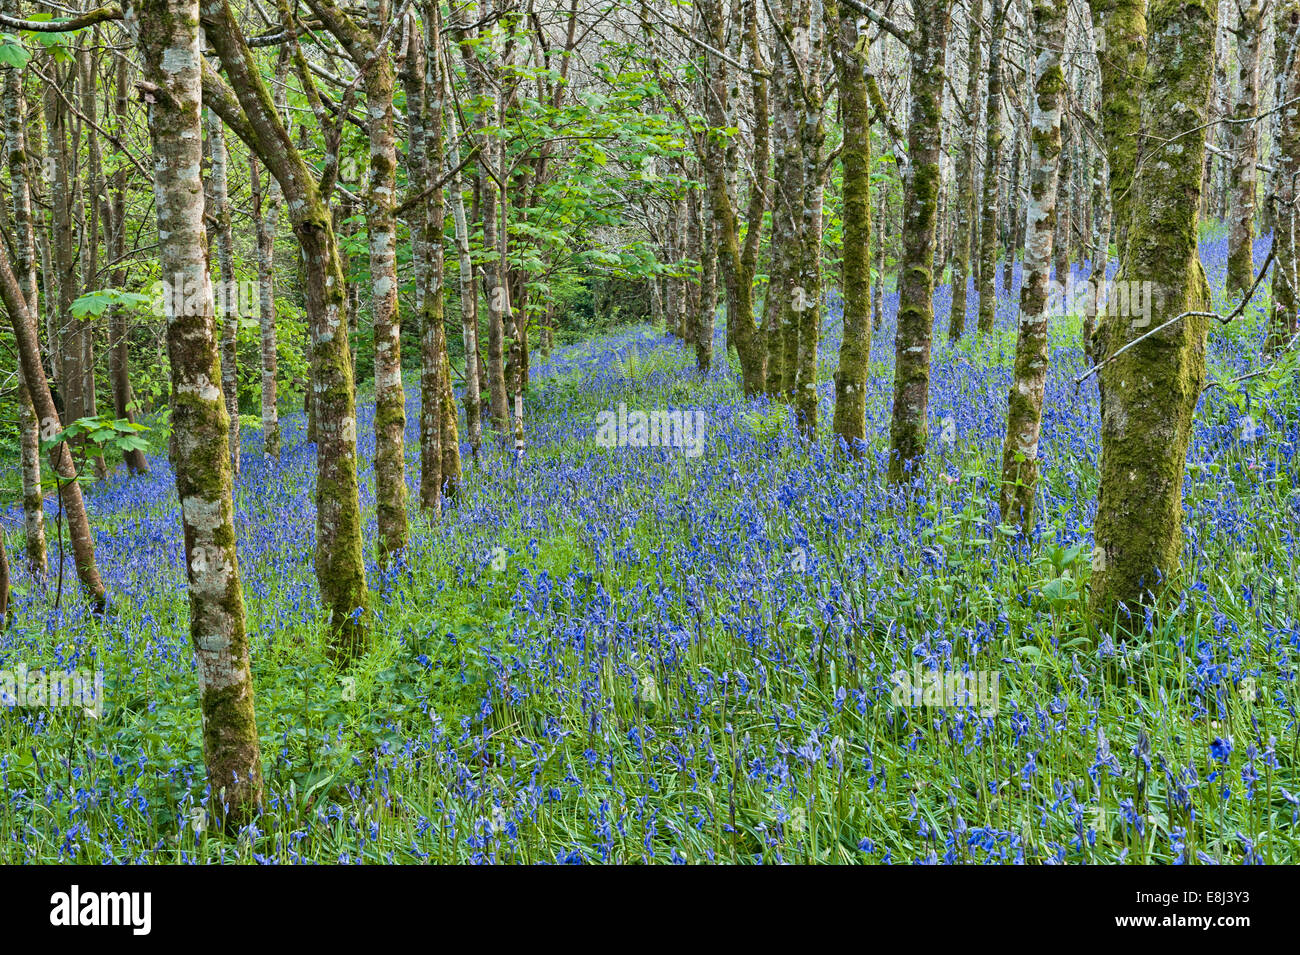 Trevarno, Helston, Cornwall, UK. Woodland (beech and silver birch trees) filled with bluebells in spring - Stock Image